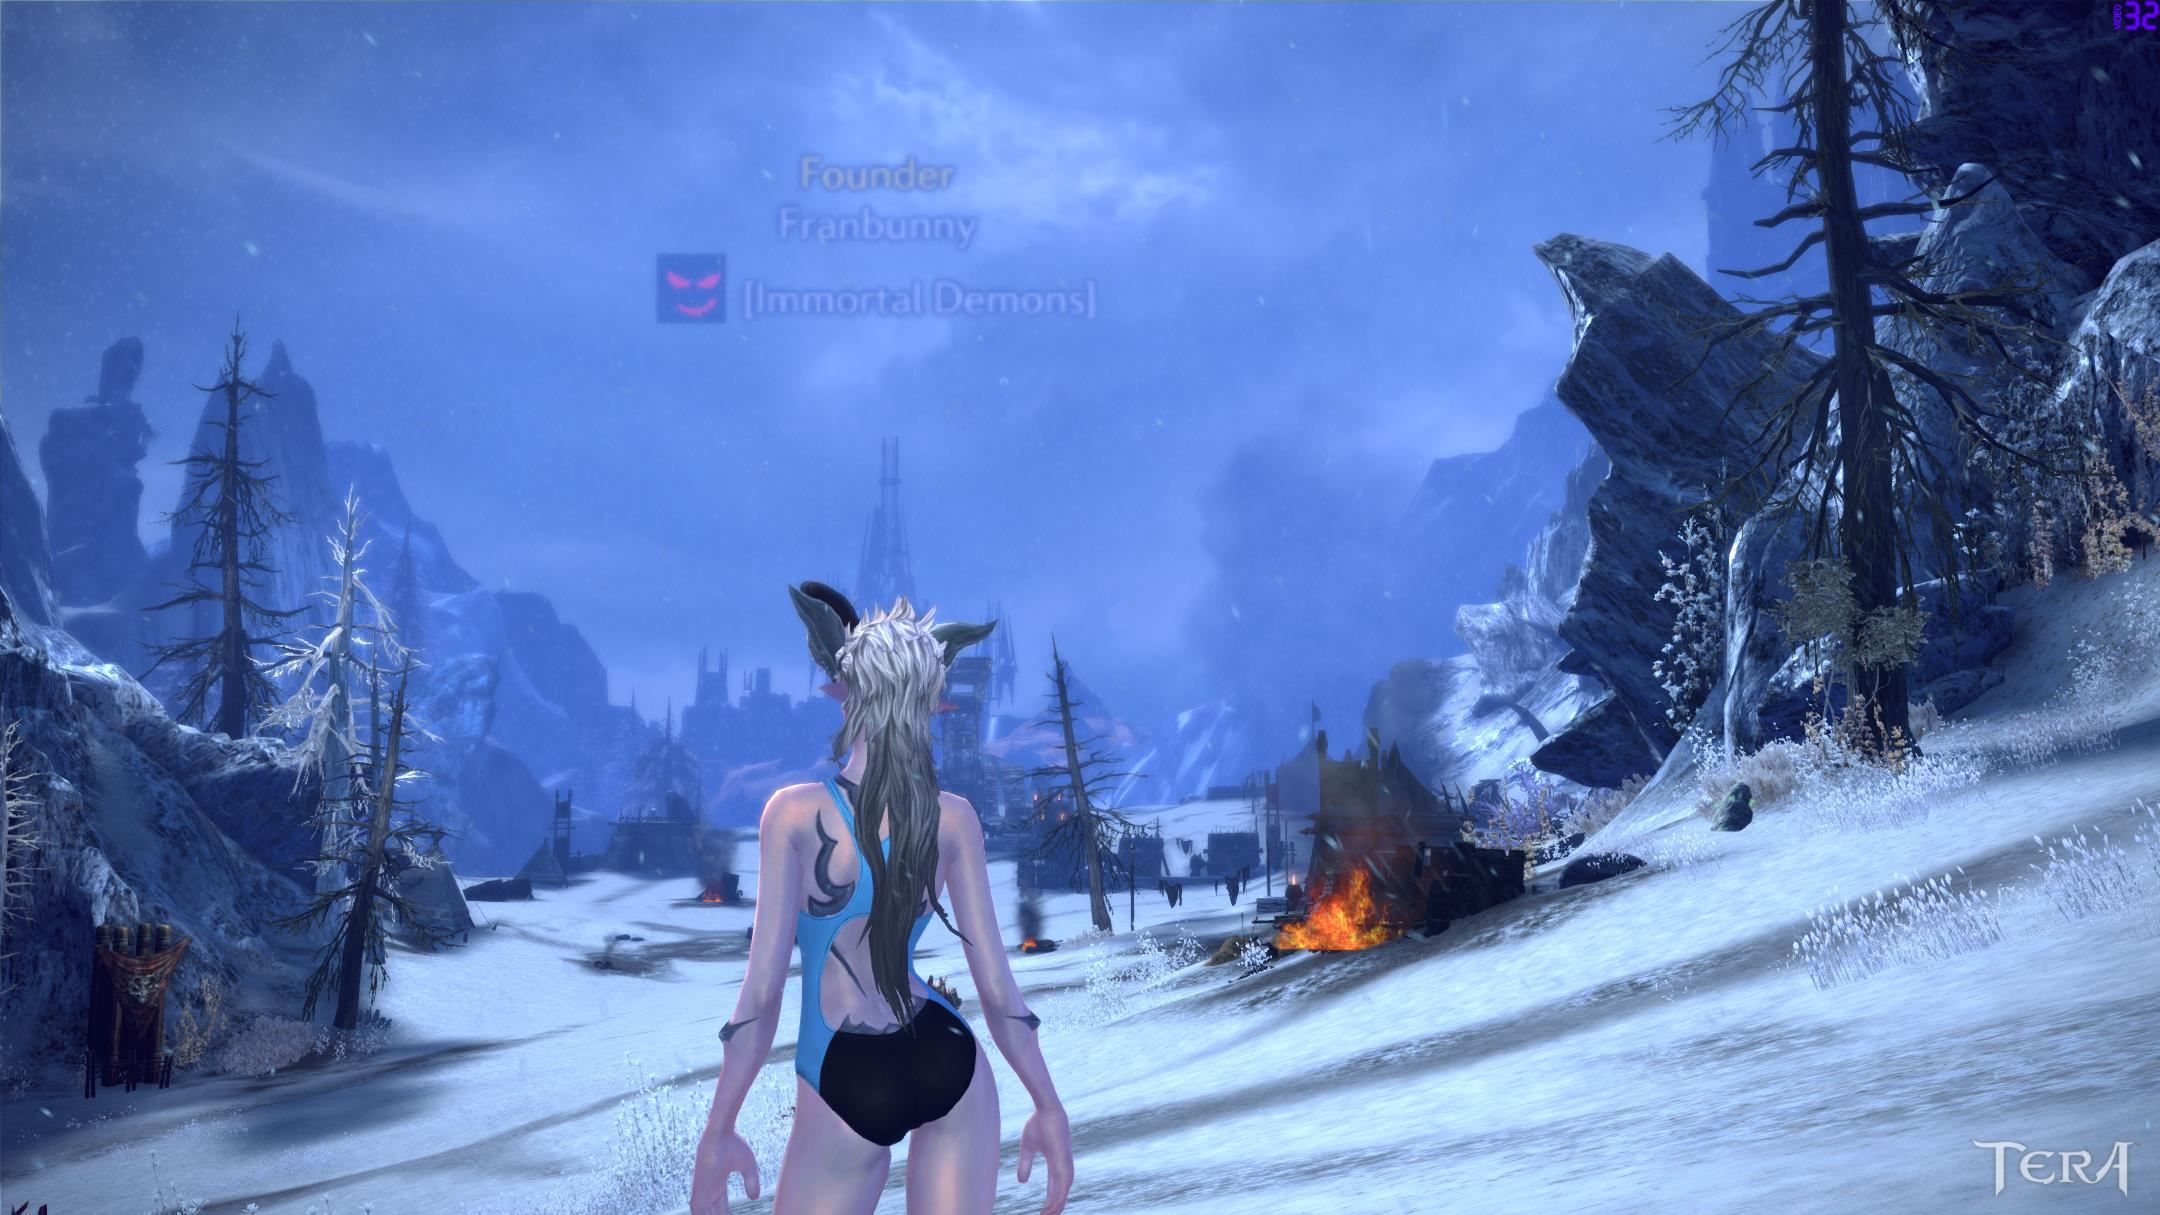 The Tera Online Thread - Page 35 - Overclock net - An